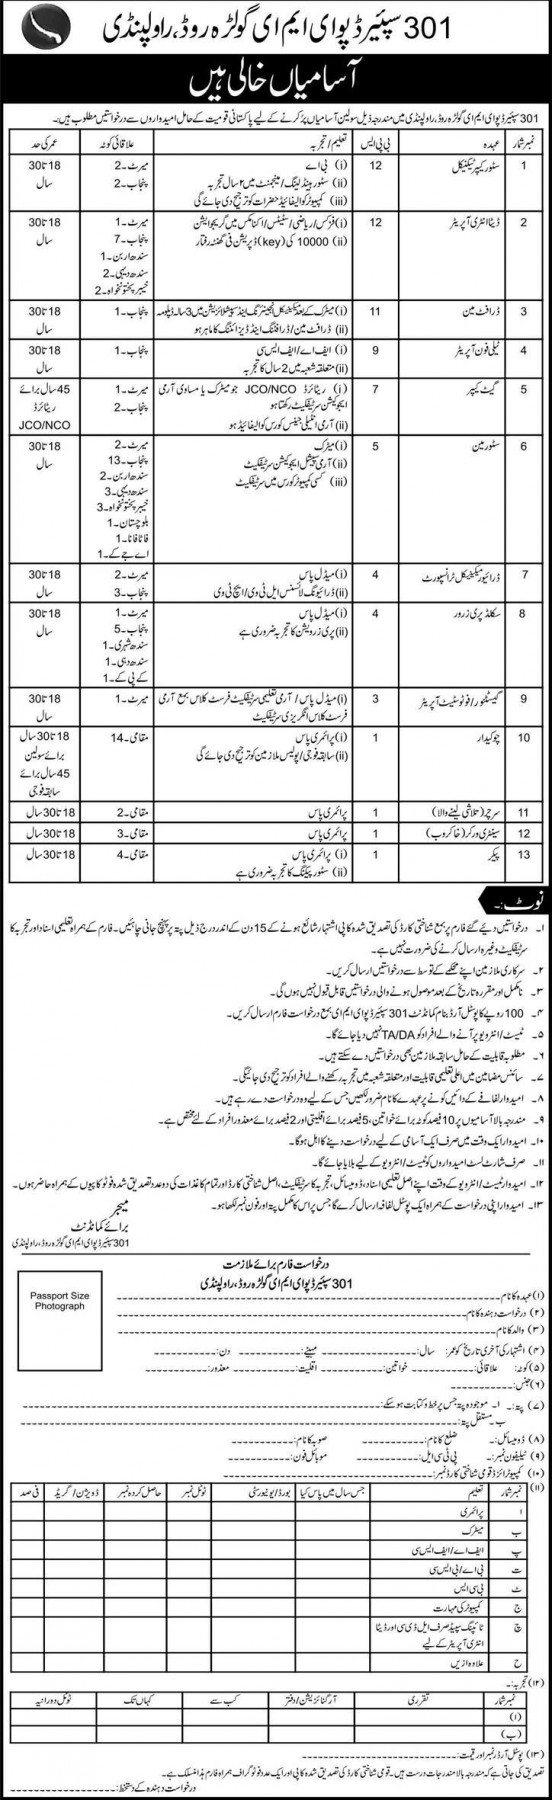 Spare Depo 301 EME Rawalpindi Jobs 2015 Application Form Eligibility Criteria Dates